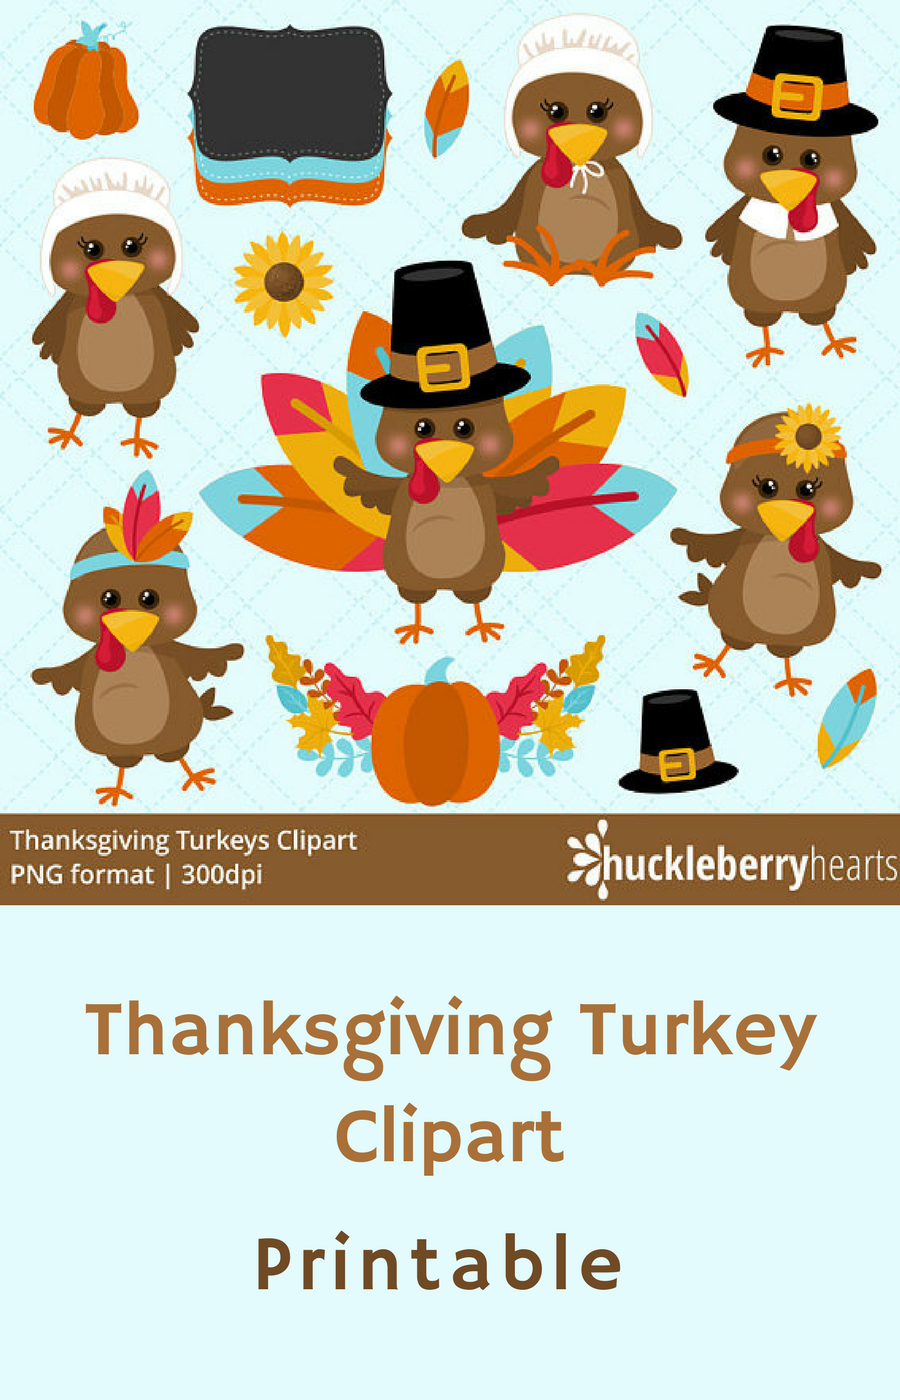 small resolution of i love this cute thanksgiving clipart turkey clip art turkey clip art turkey graphics printable commercial use nnt afflink clipart printable